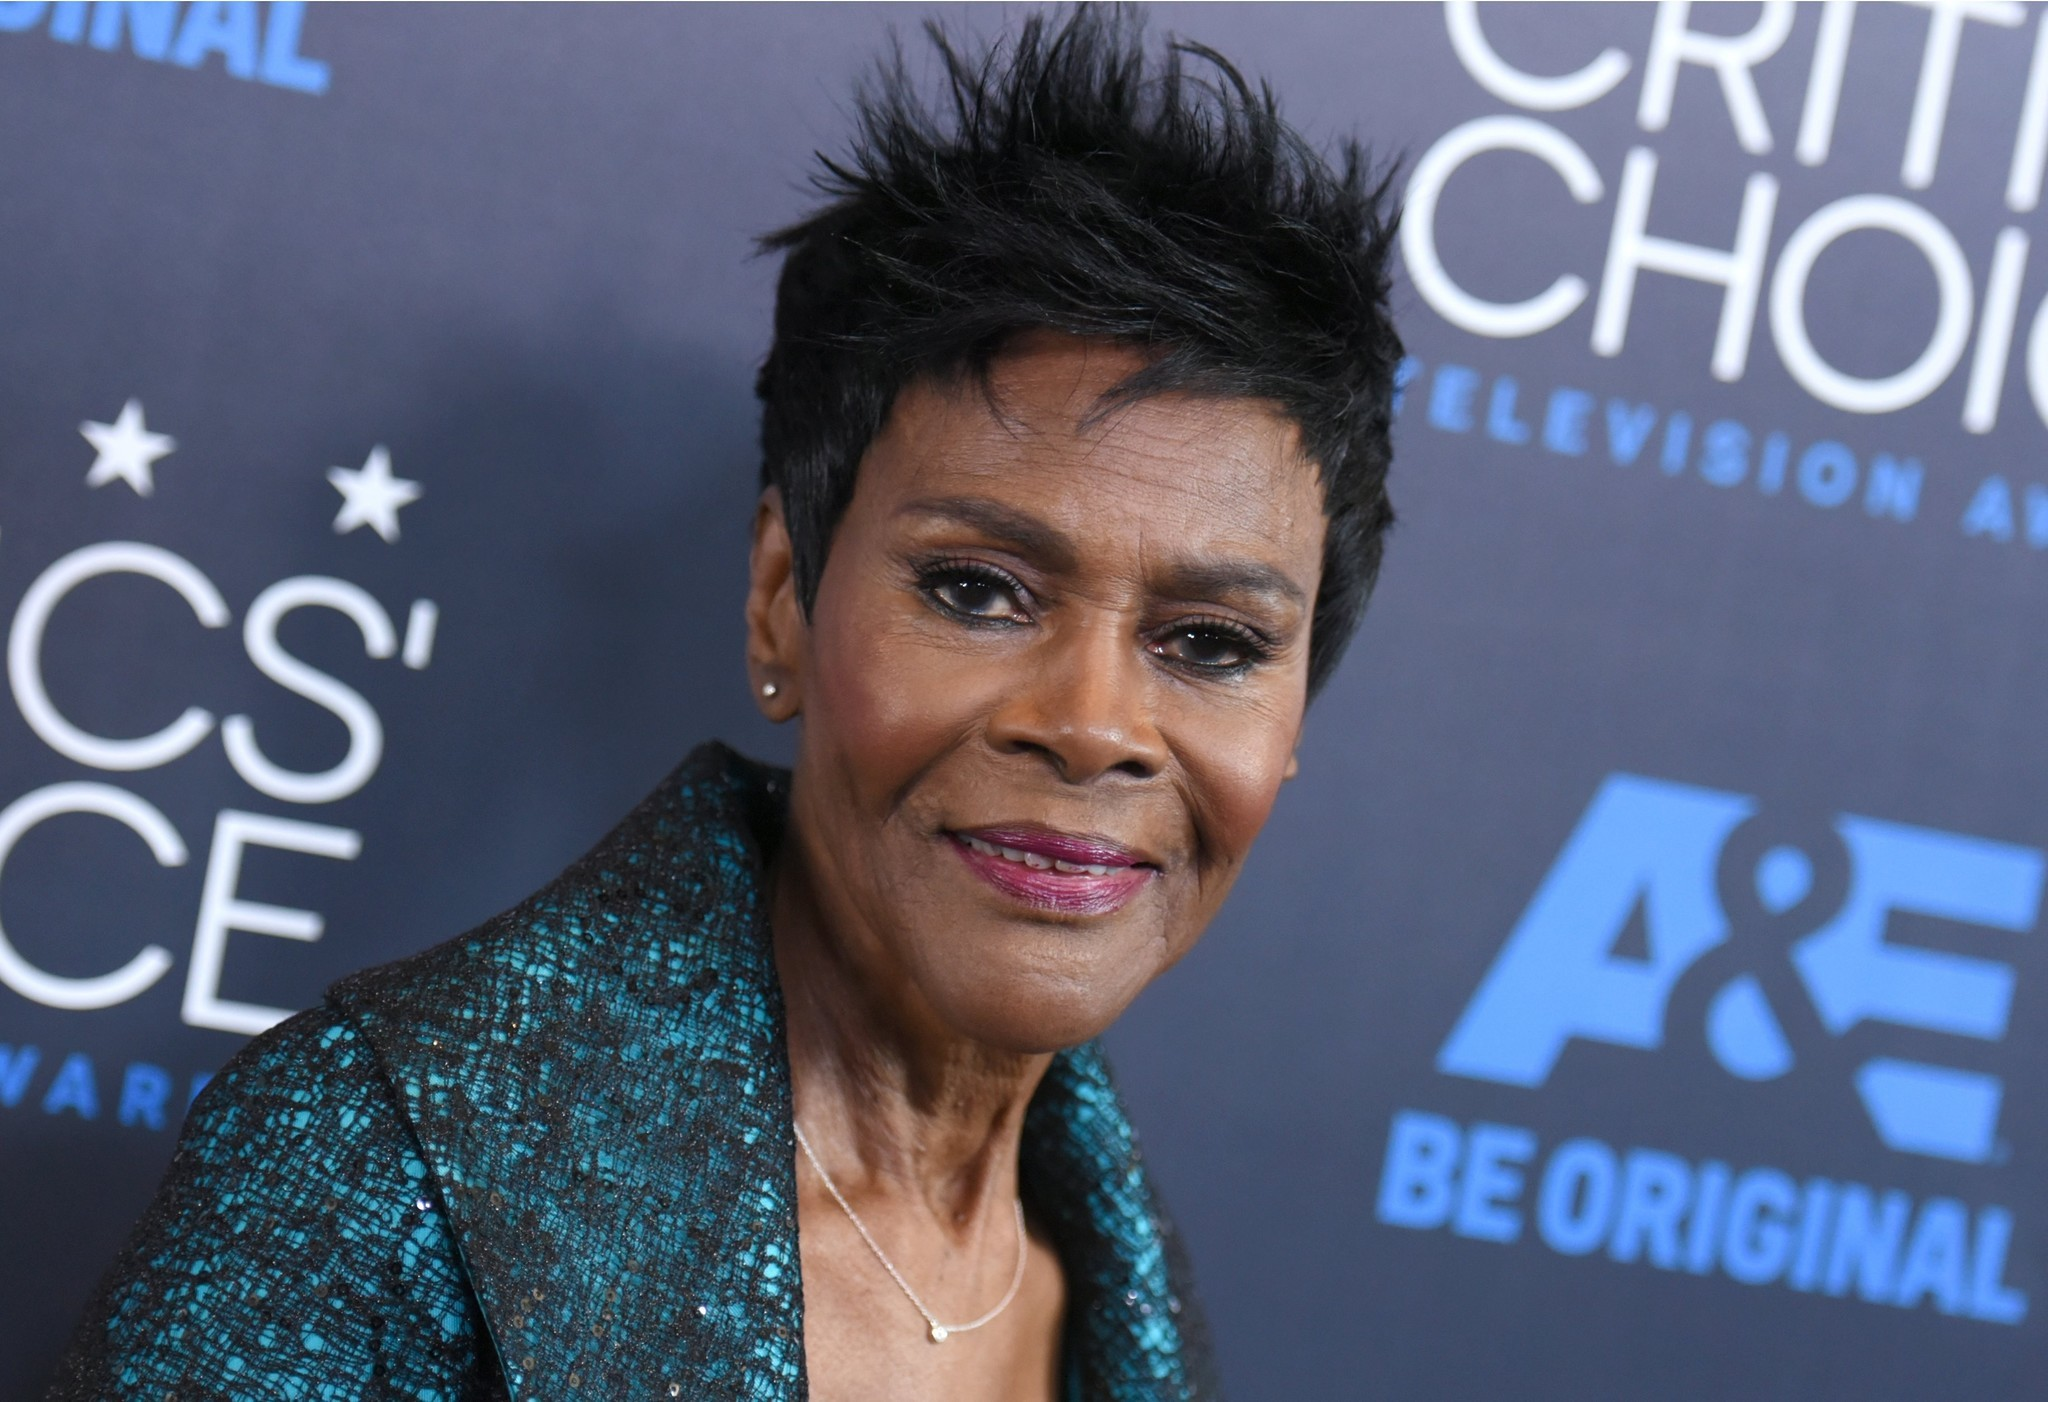 Cicely Tyson will be honored in April with a hand-and-footprint ceremony at the TCM Classic Film Festival. (Richard Shotwell / Invision/Associated Press)